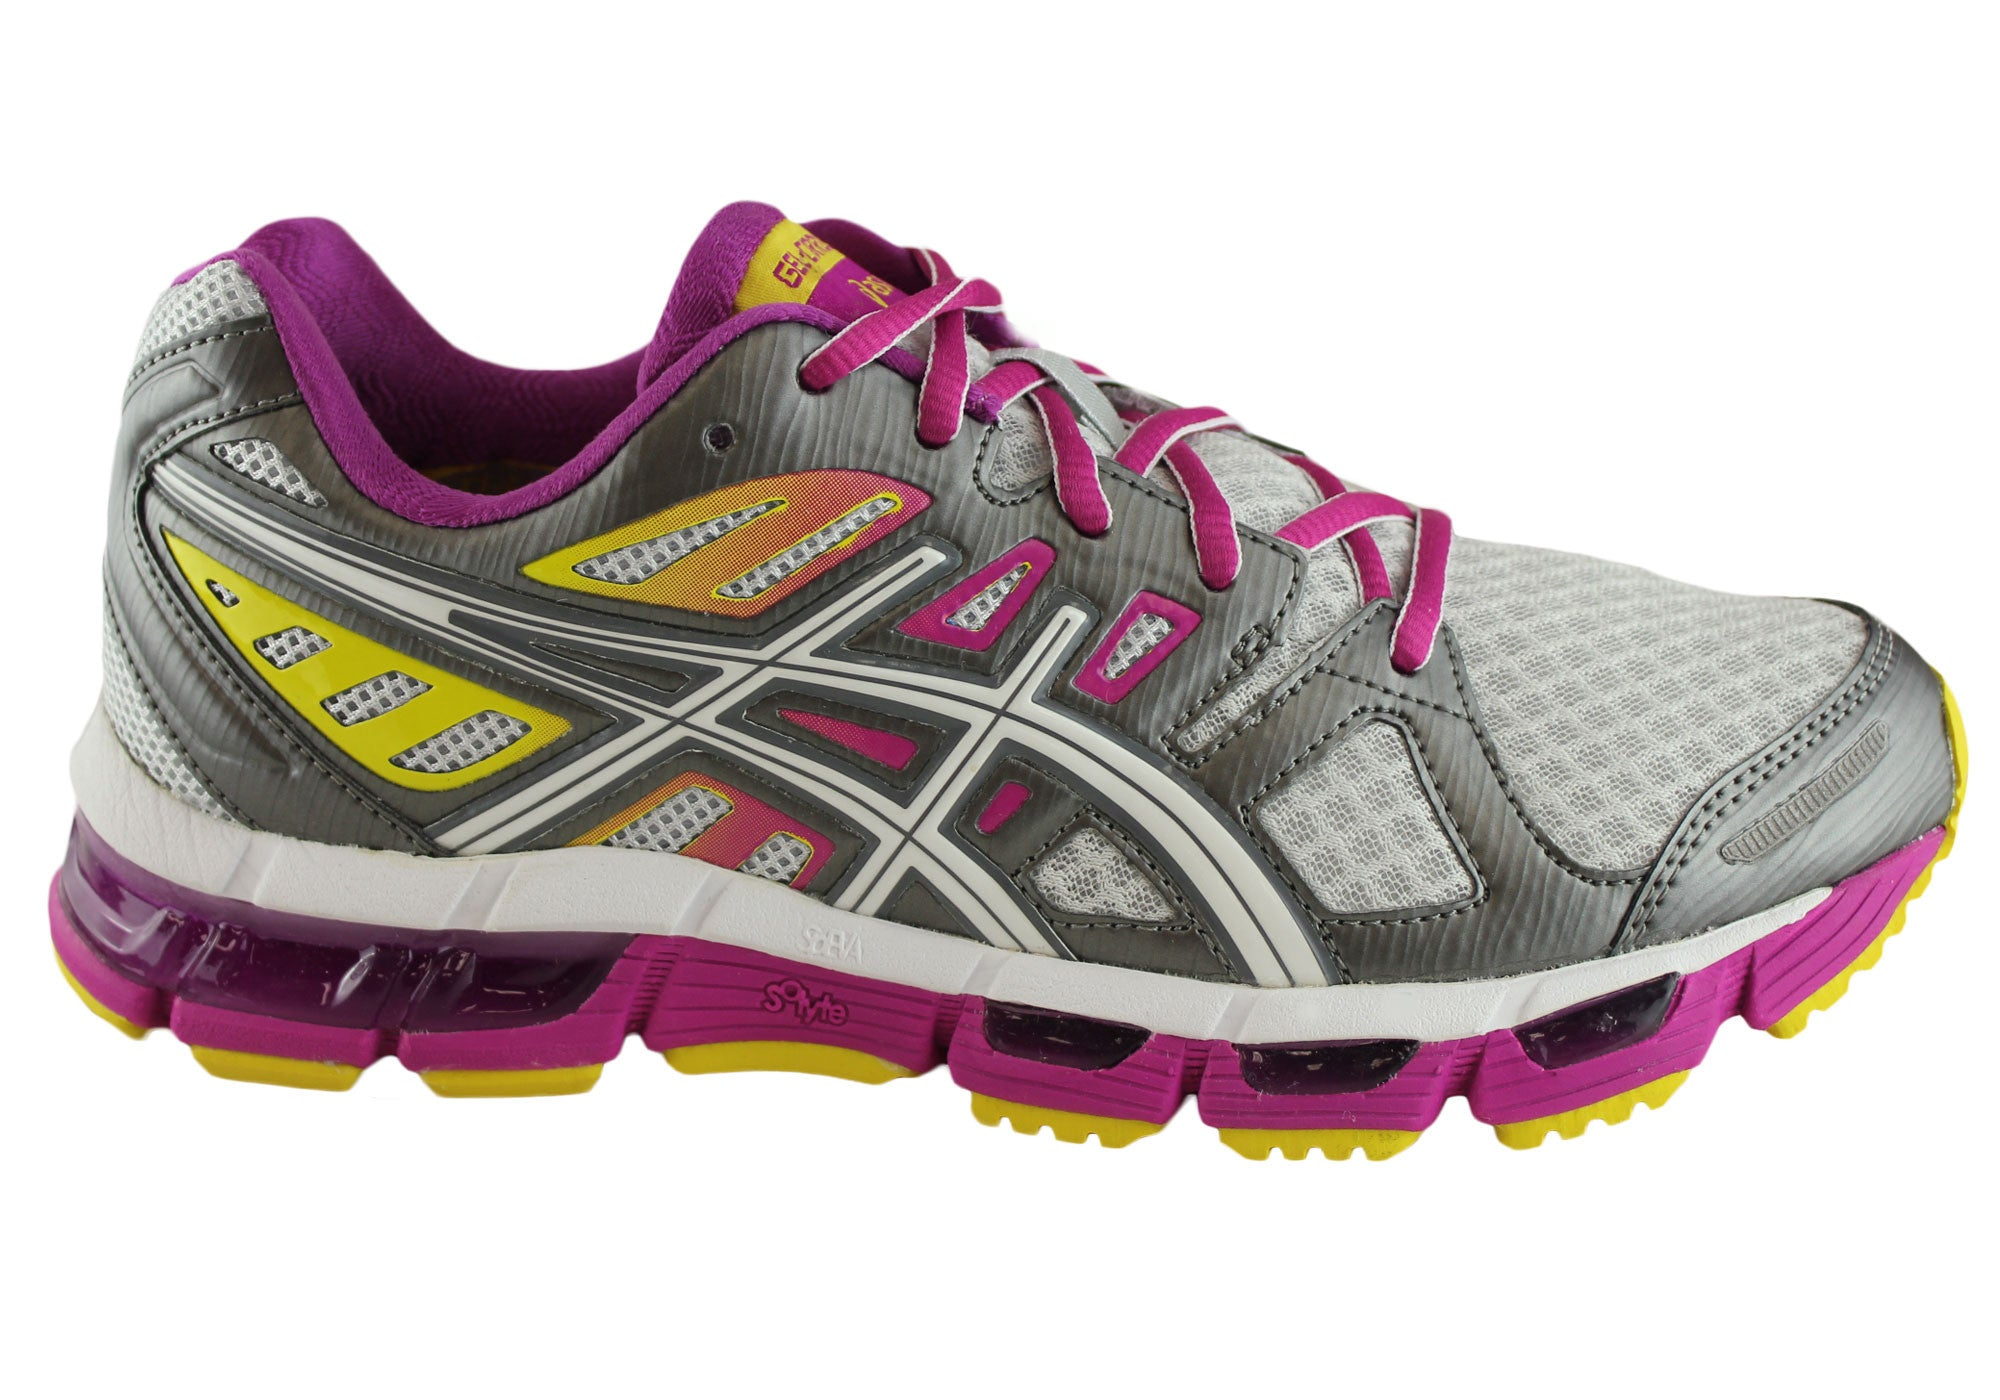 57f36de056f8 Home Asics Gel-Cirrus 33 2 Womens Running Sports Shoes. Silver  ...